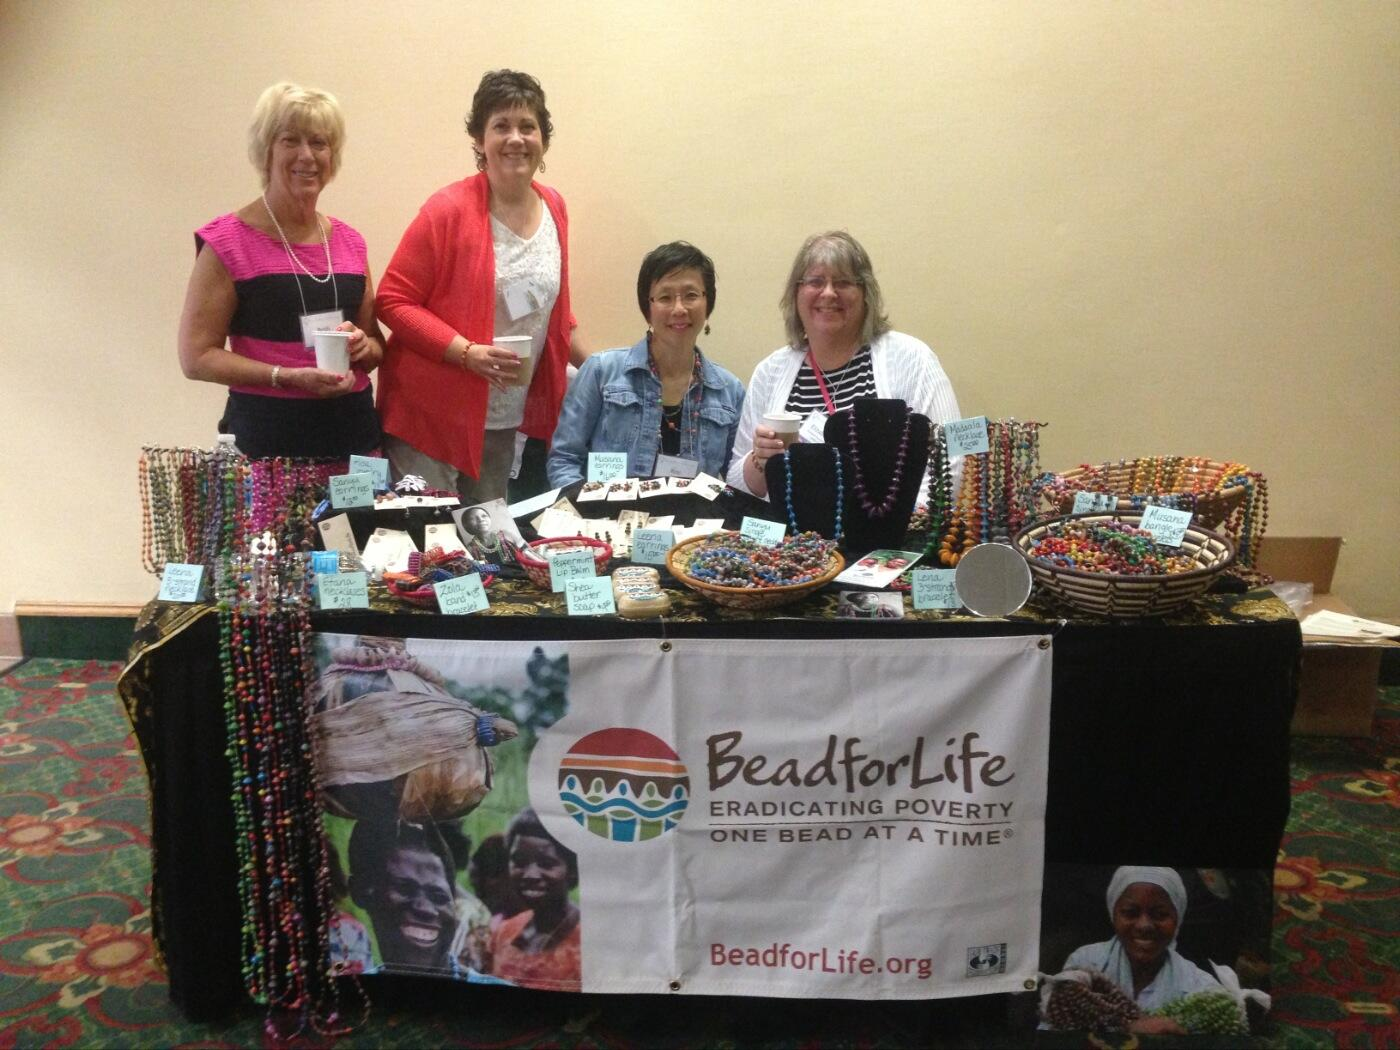 RT @DineforWomen: @BeadforLife is one of the many marketplace vendors awaiting the release of the first session. #DFW10Year http://t.co/5bQ3HLn9sK